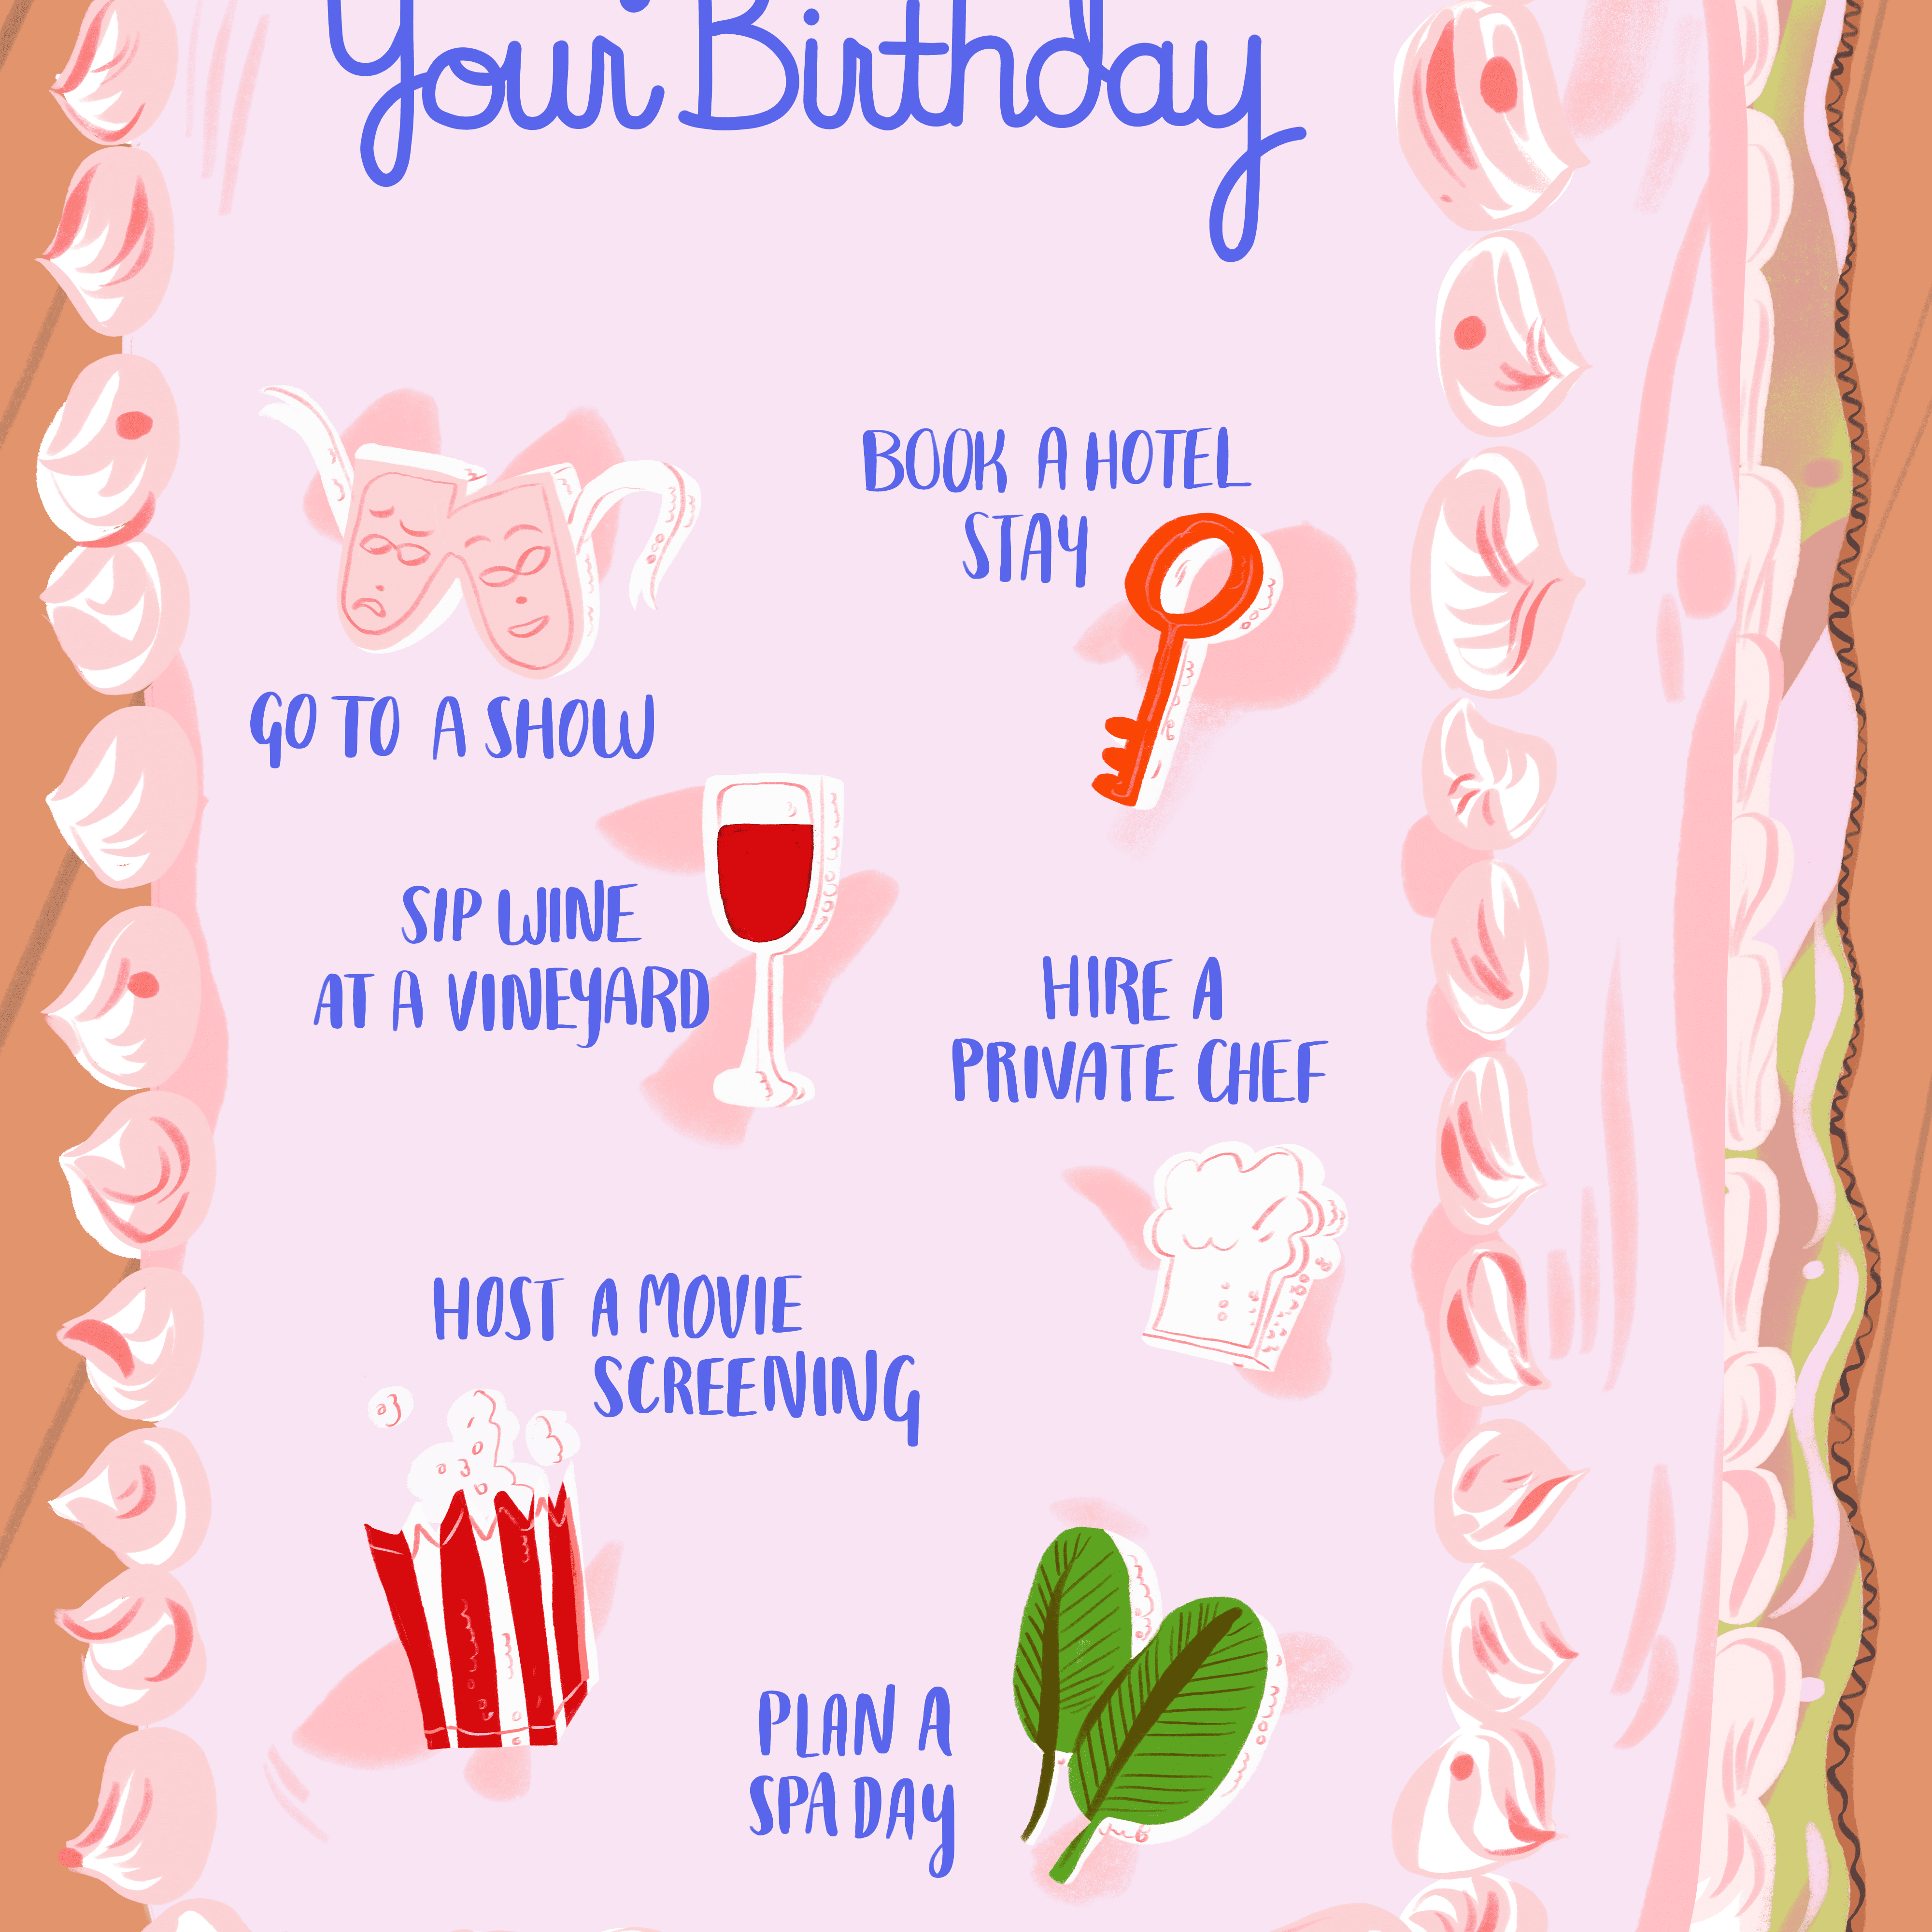 17 Things To Do On Your Birthday When You're Out Of Ideas